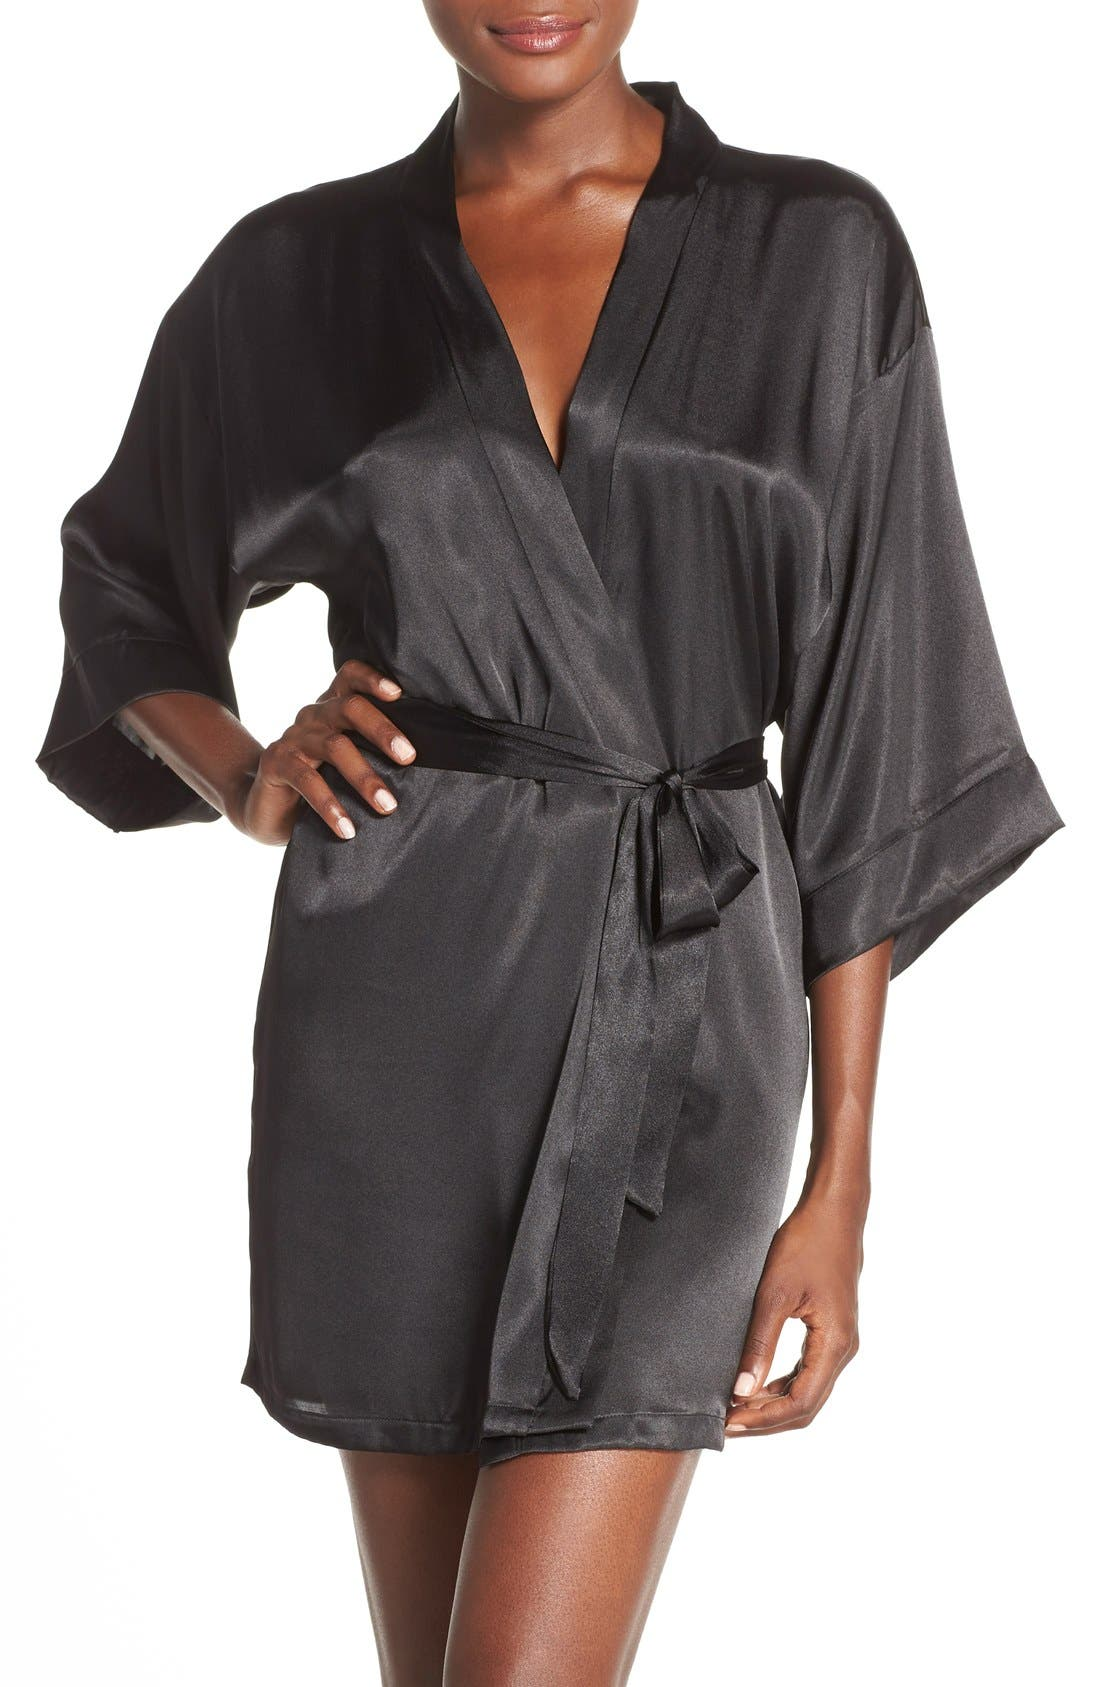 Alternate Image 1 Selected - In Bloom by Jonquil Satin Robe (Nordstrom Exclusive)